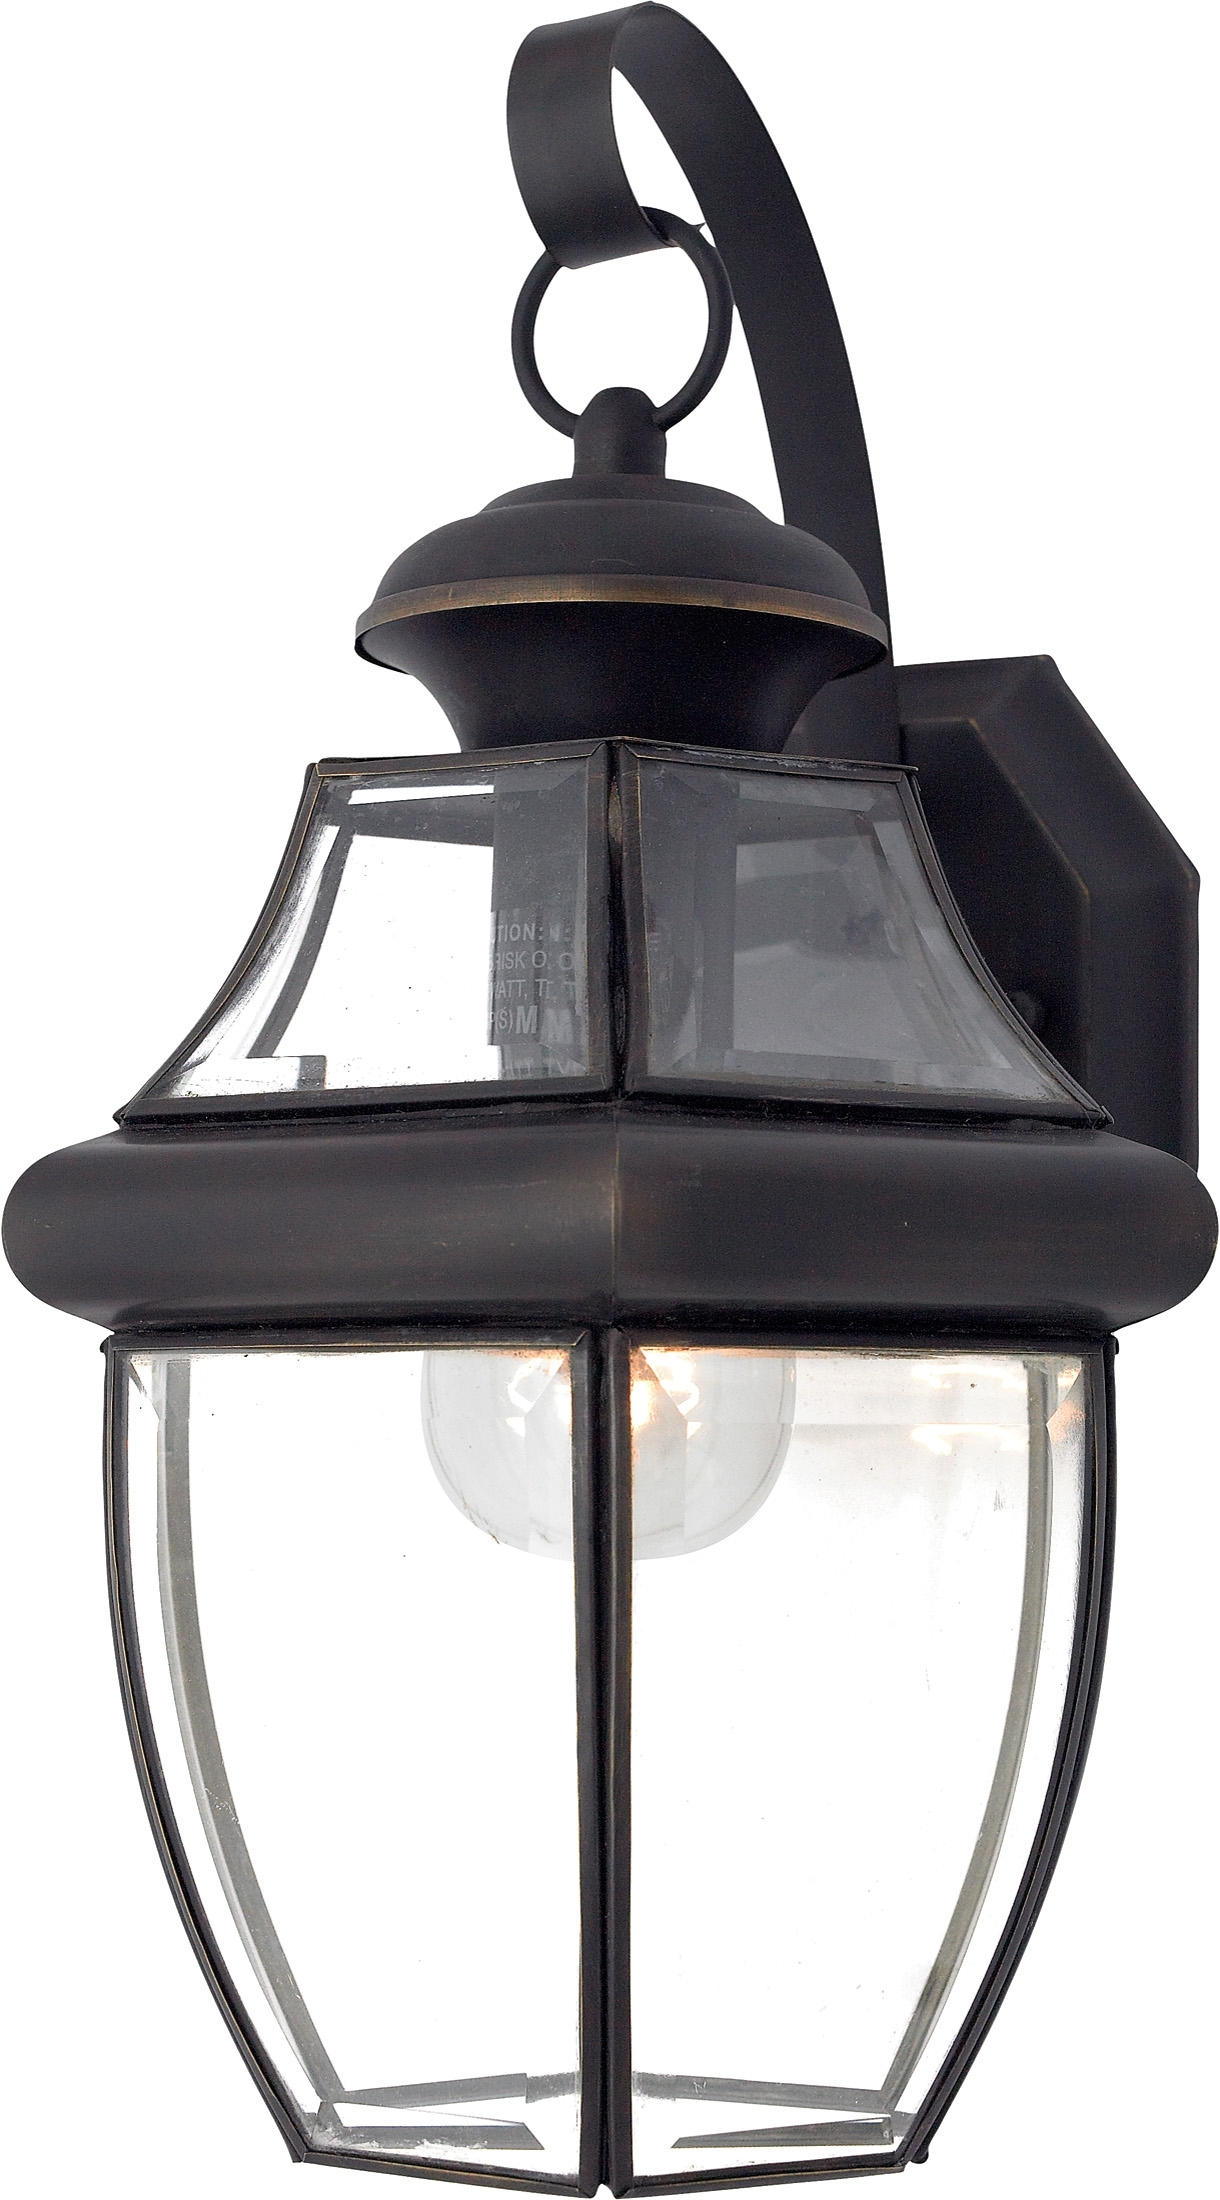 Home Decor + Home Lighting Blog » Blog Archive » Quoizel Lighting Pertaining To Traditional Outdoor Wall Lights (#9 of 15)